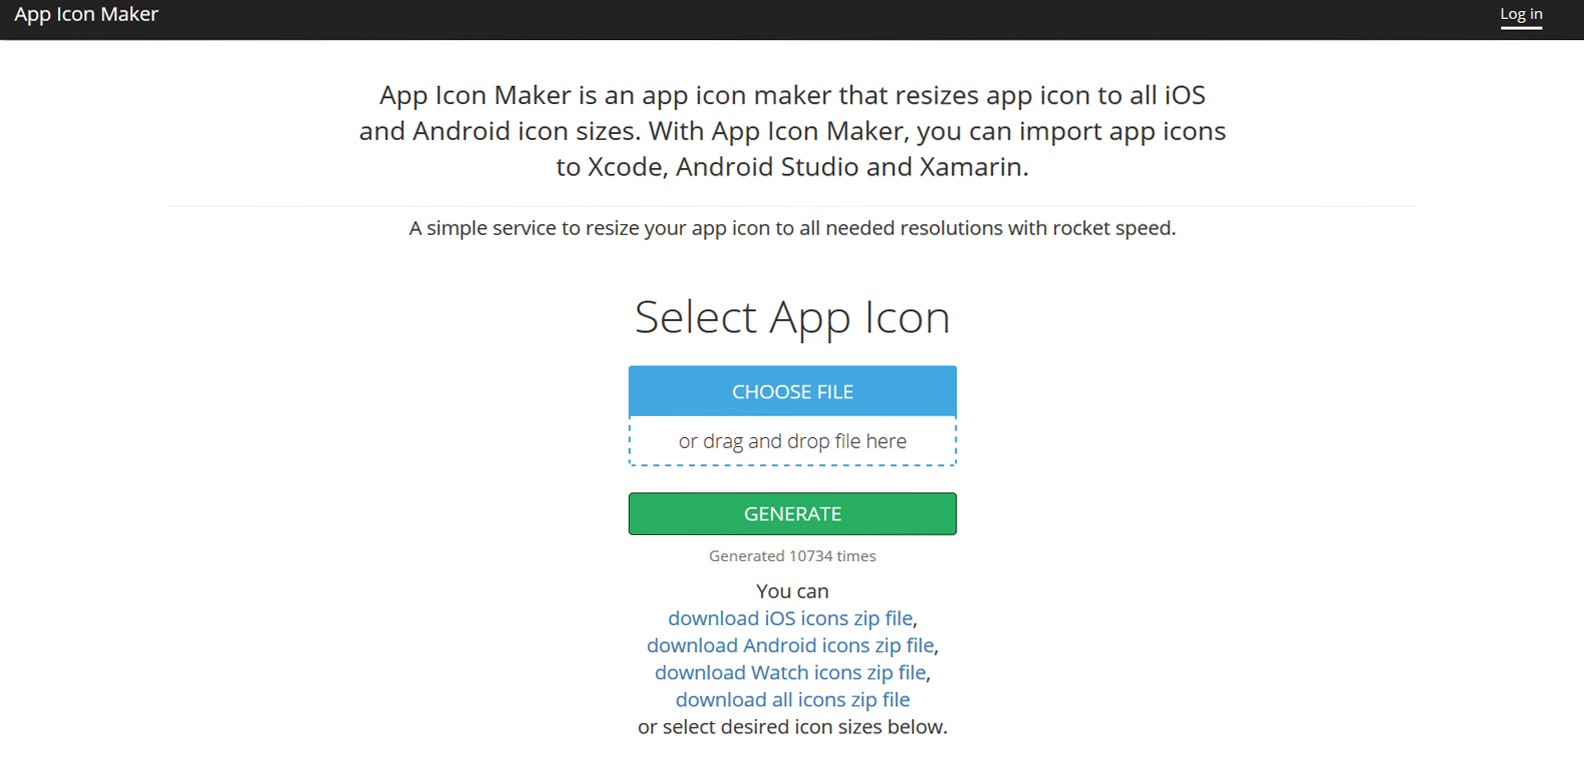 Creating app icons for IOS and Android